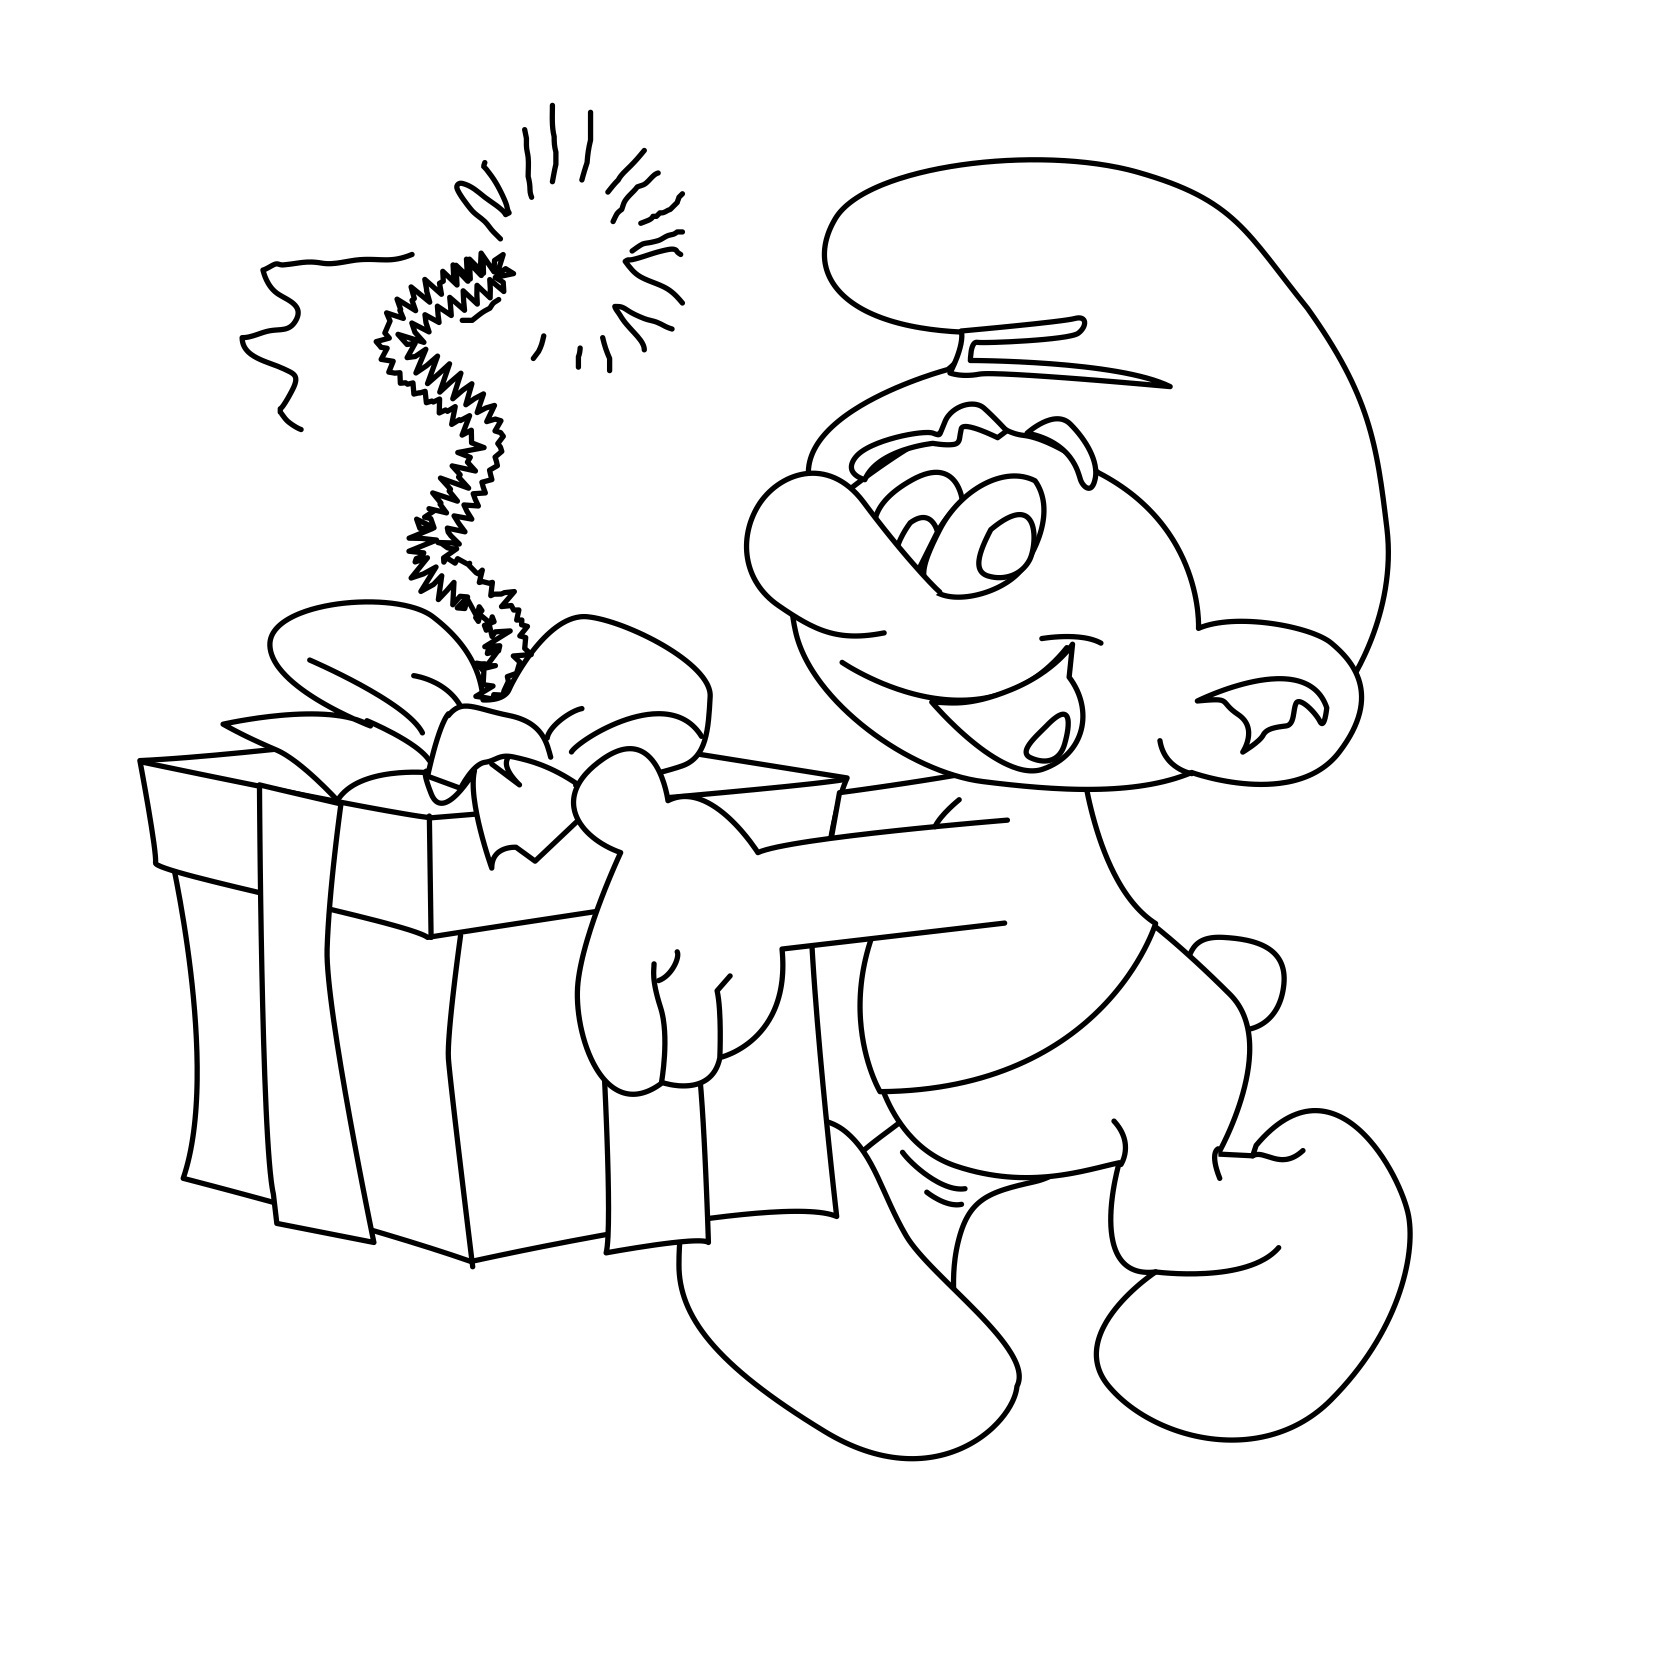 Free Printable Smurf Coloring Pages For Kids